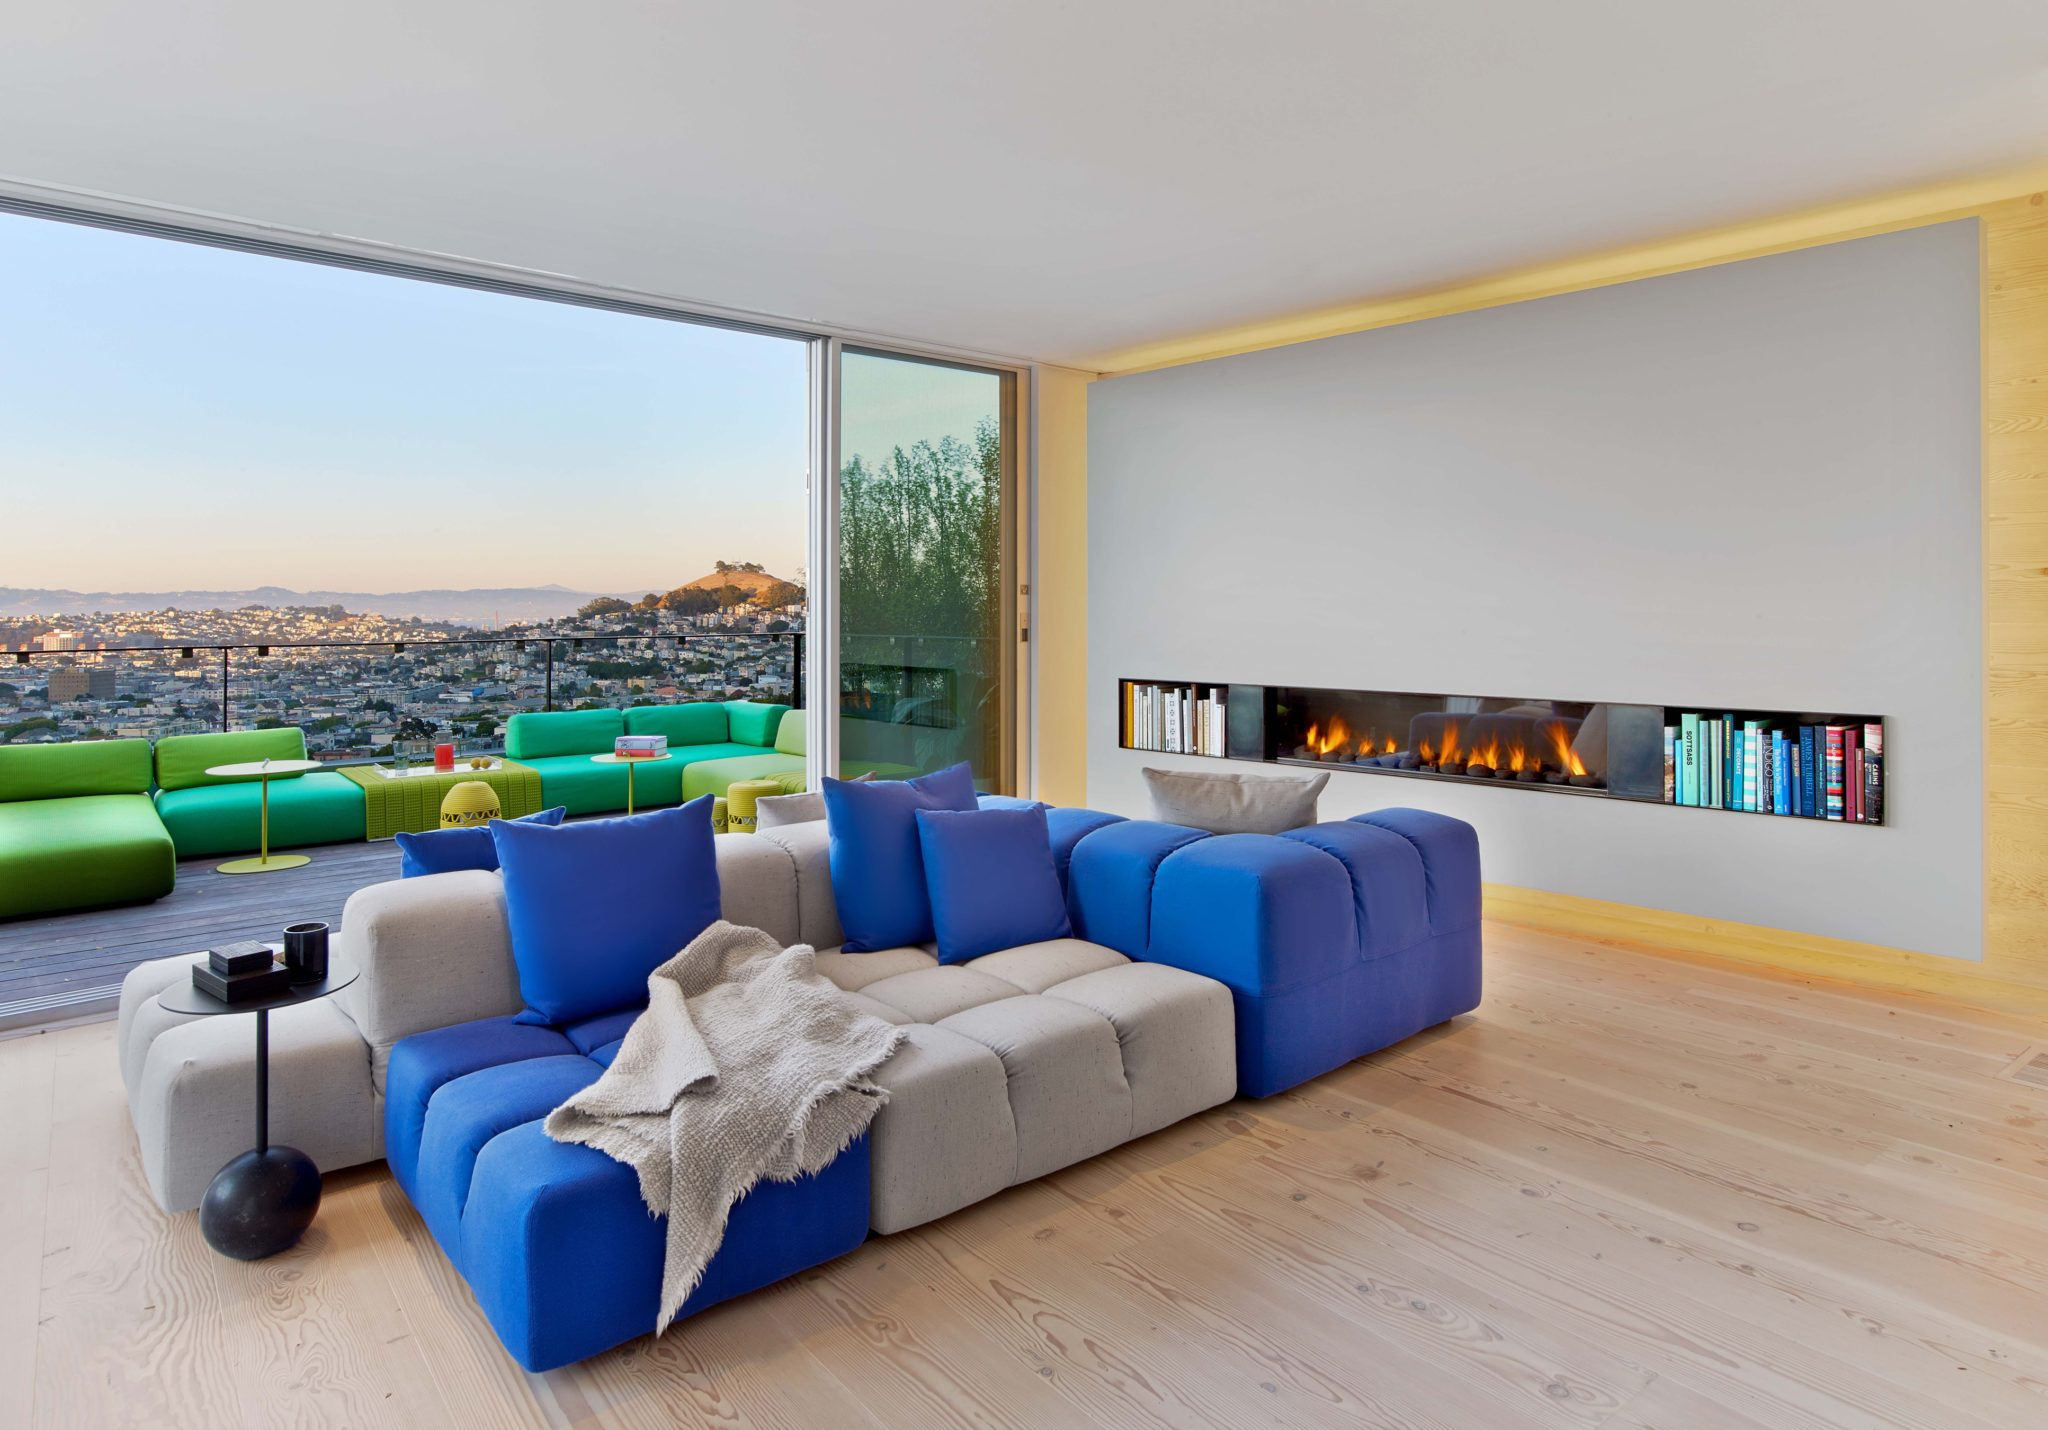 Glen Park Residence, open living room with city views and floating fire place by Cass Calder Smith | CCS Architecture